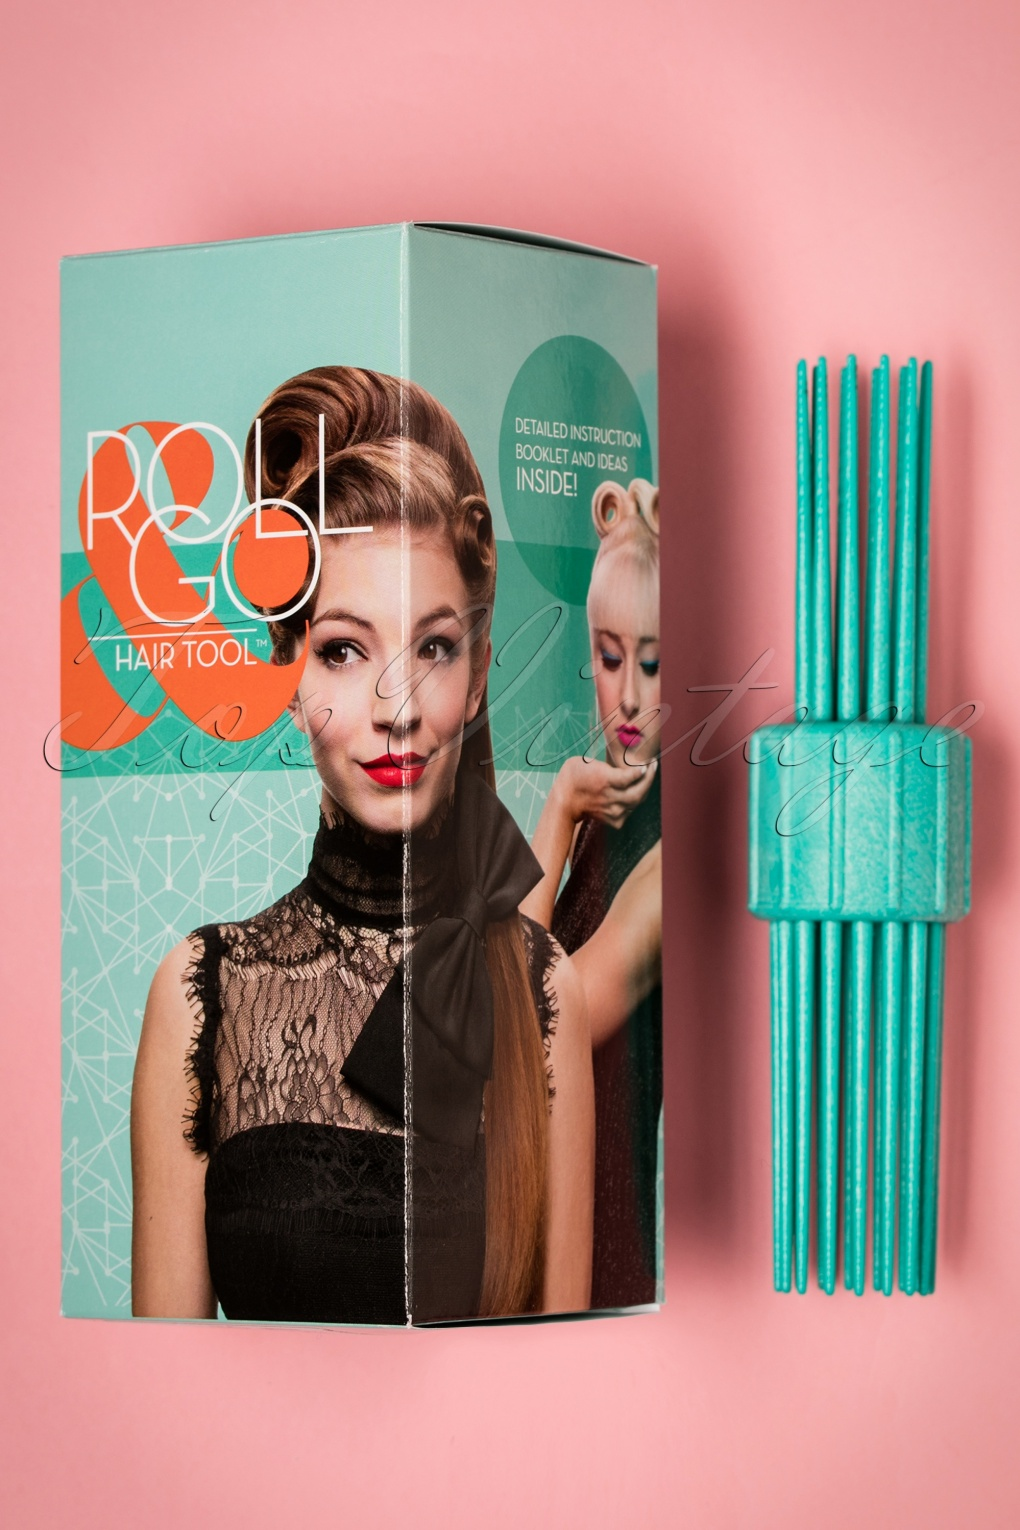 1940s Hairstyles- History of Women's Hairstyles Vintage Hairstyling RollGo Pin Curl Hair Tool Set £26.50 AT vintagedancer.com